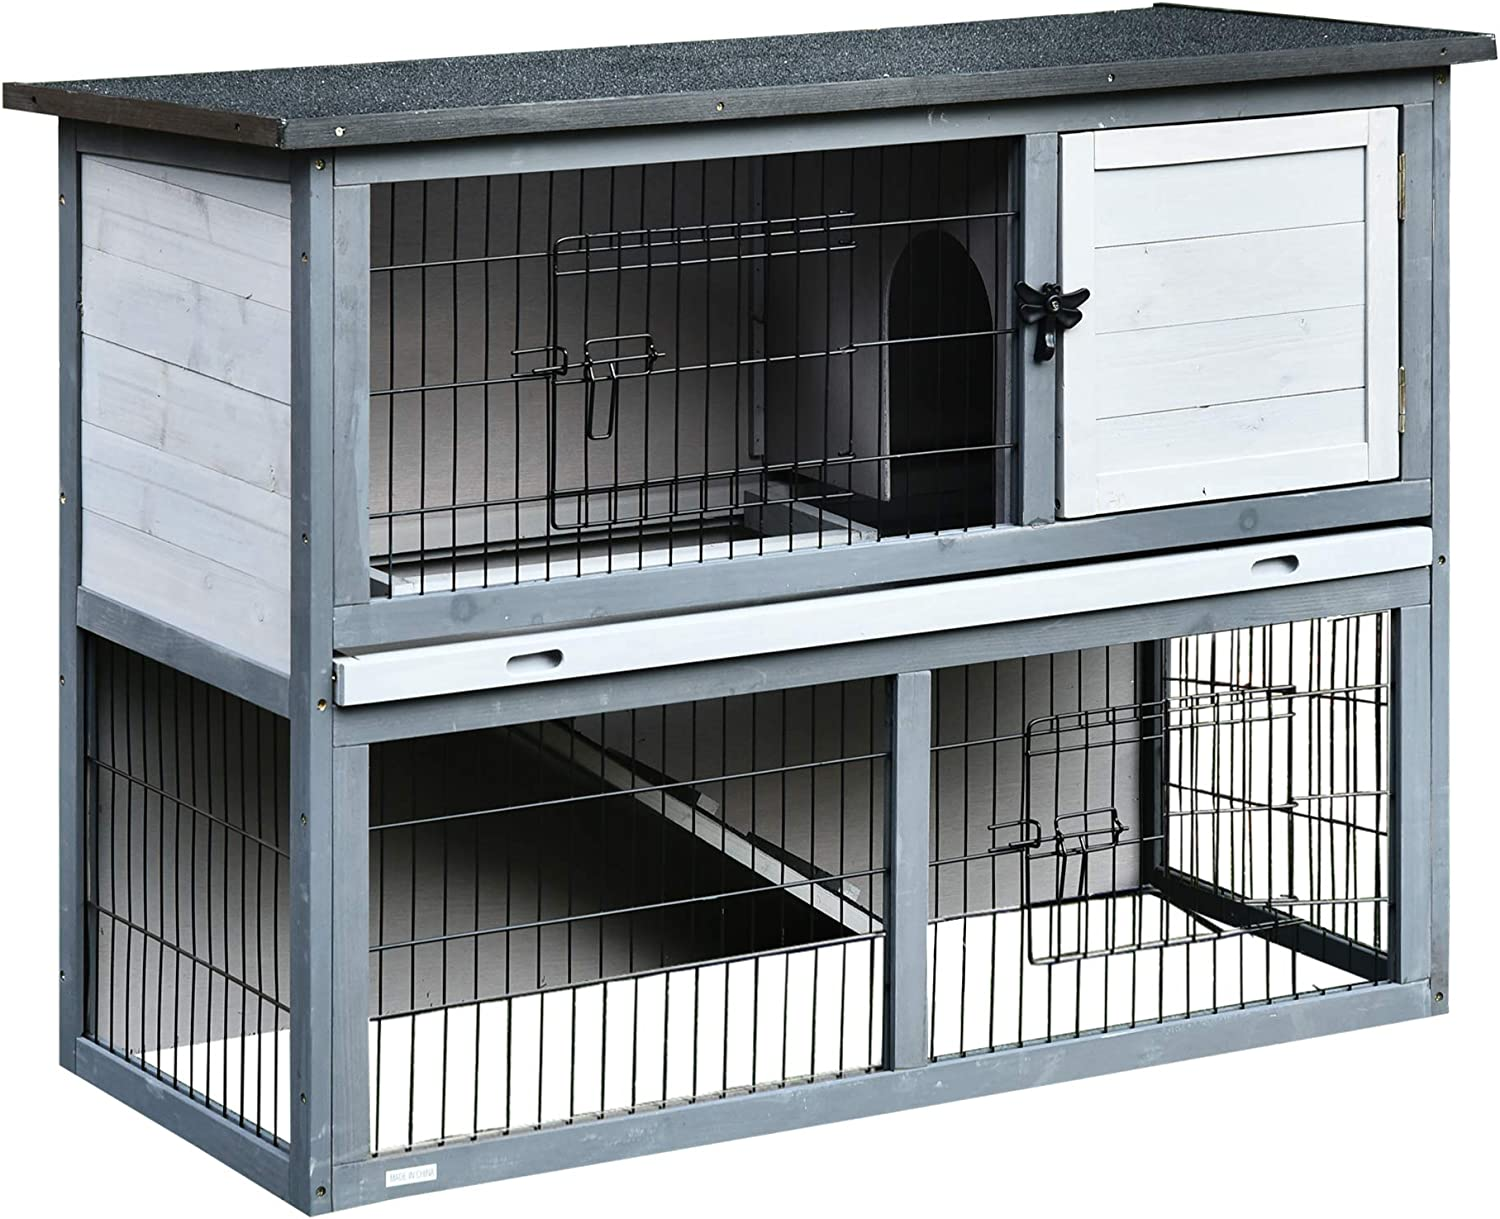 PawHut Wooden SEAL limited product Rabbit Hutch Pet Playpen Door Enclosure House wi Credence 4